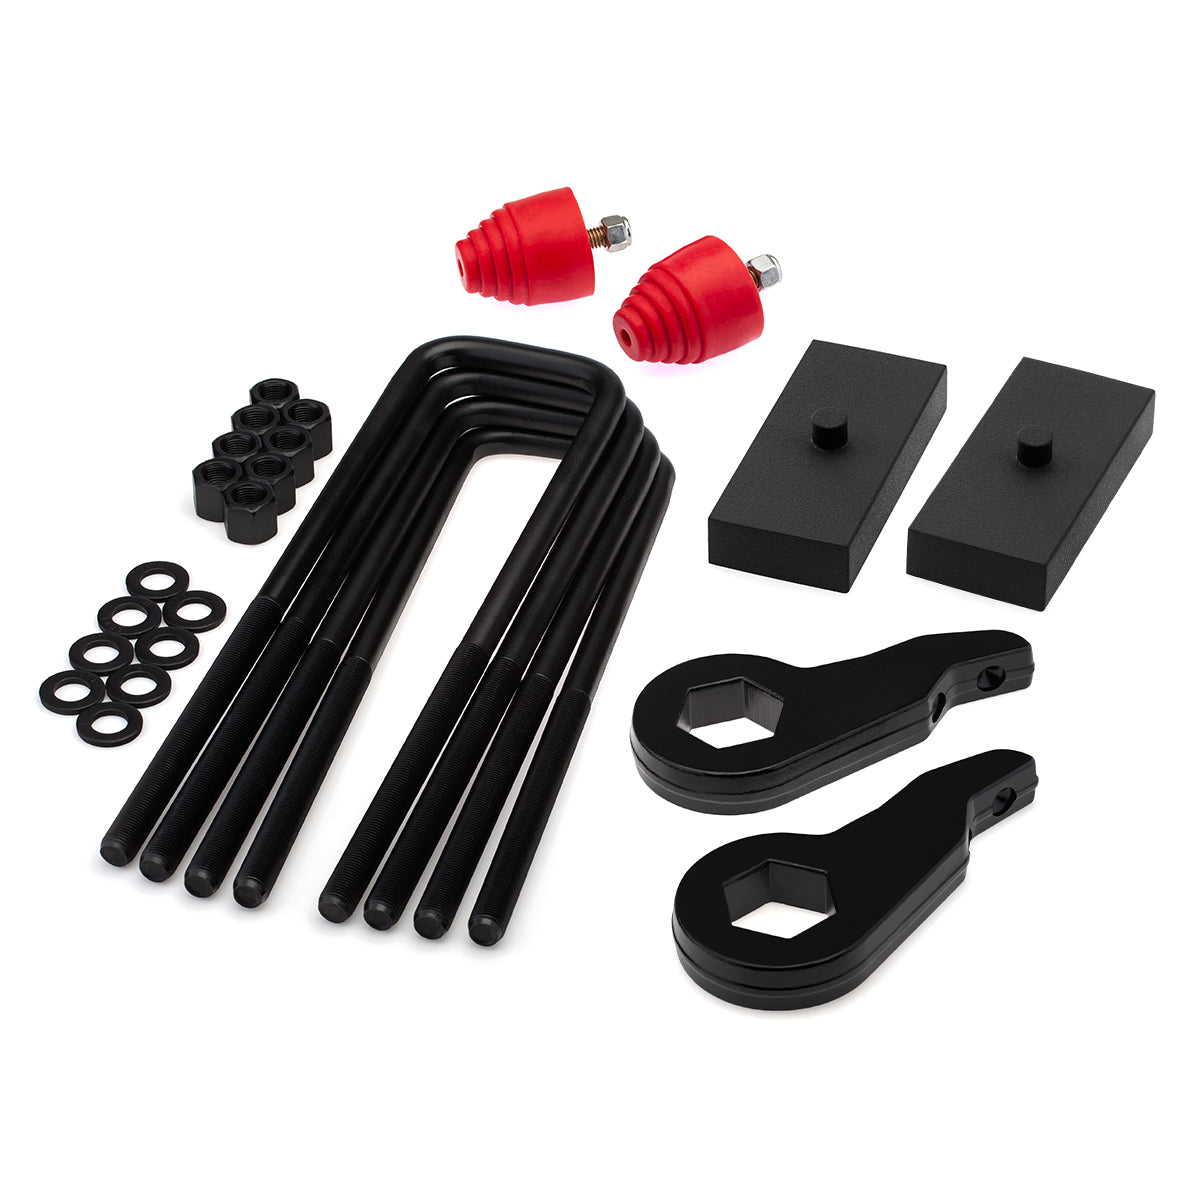 1999-2007 Chevy Silverado 1500 4WD Full Lift Kit with Bump Stops